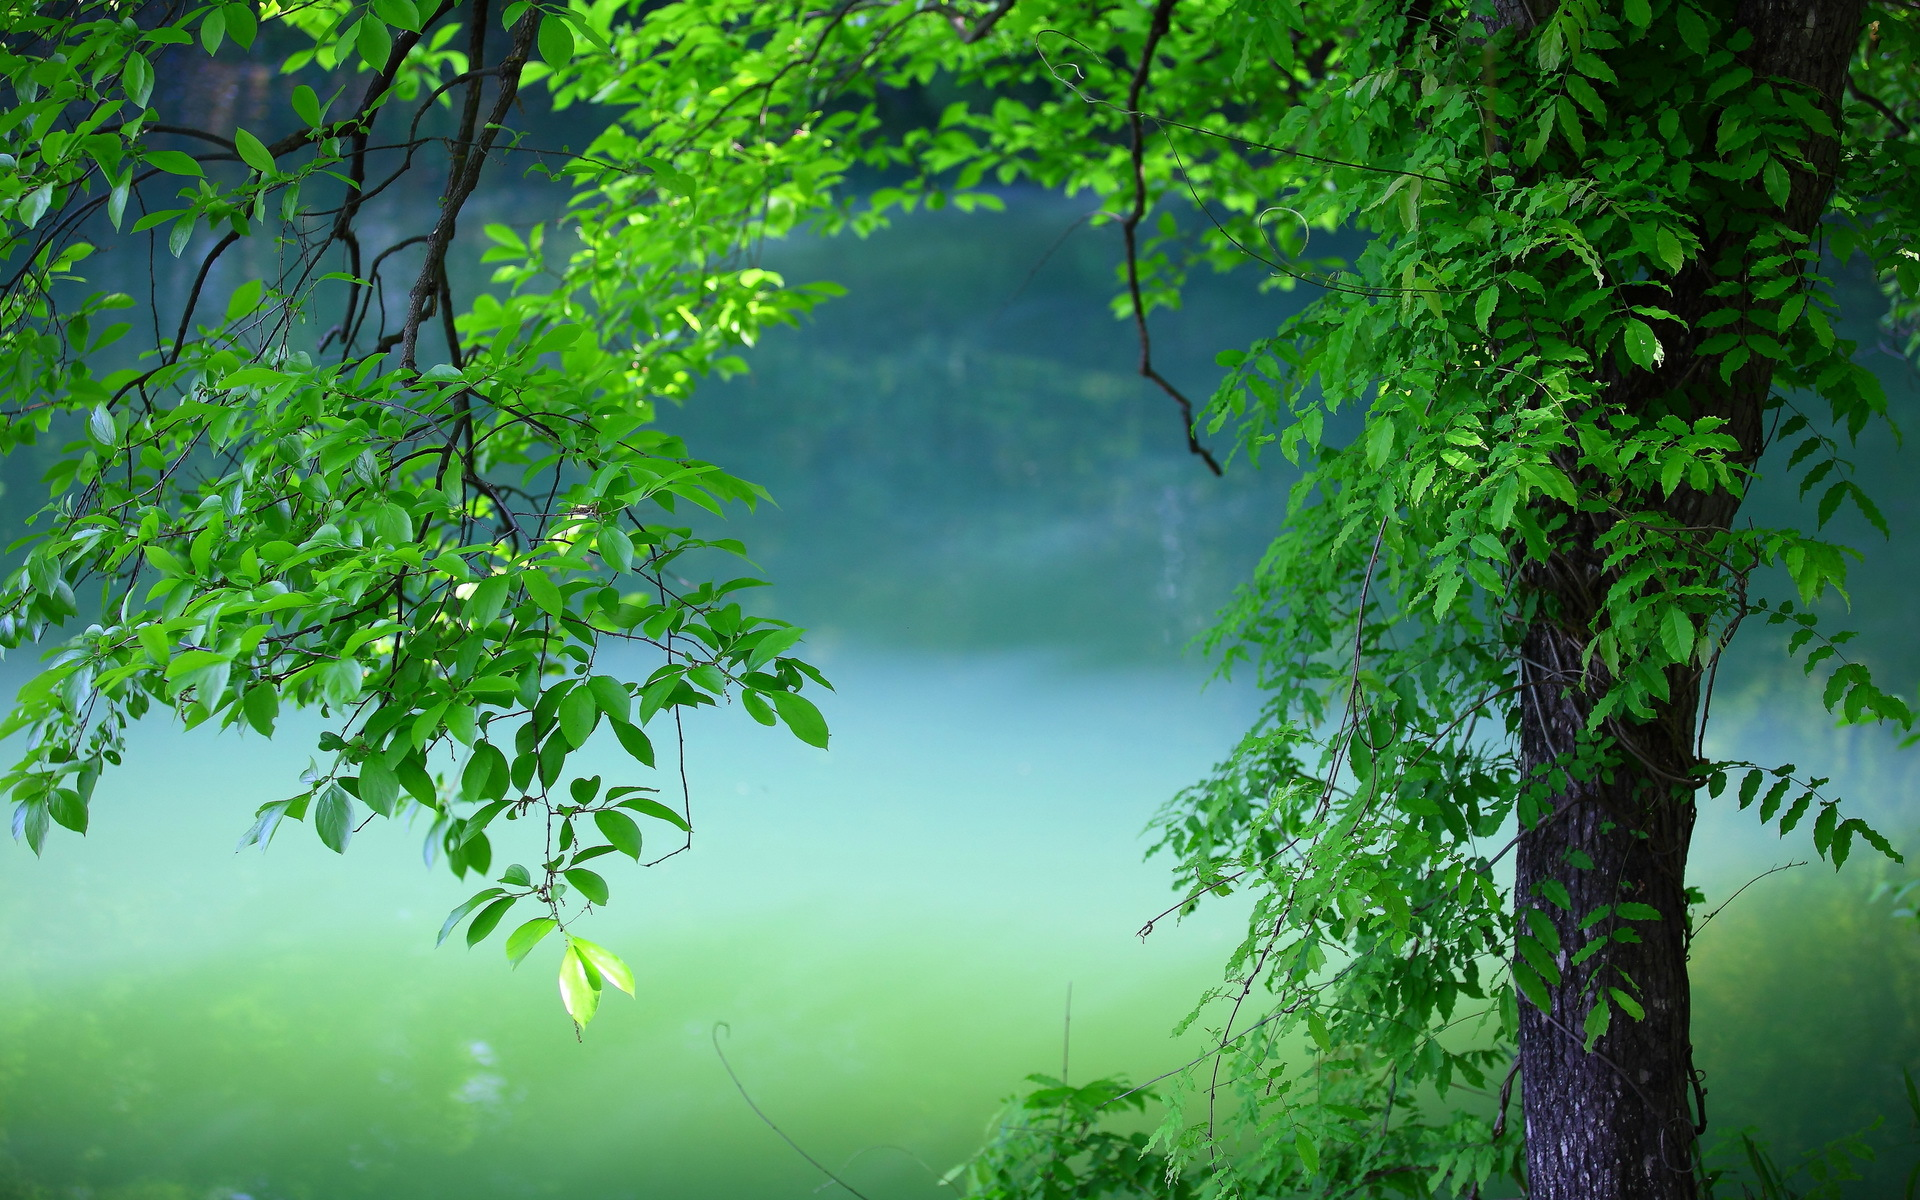 Tree hd wallpaper background image 1920x1200 id 590348 wallpaper abyss - Hd images download ...